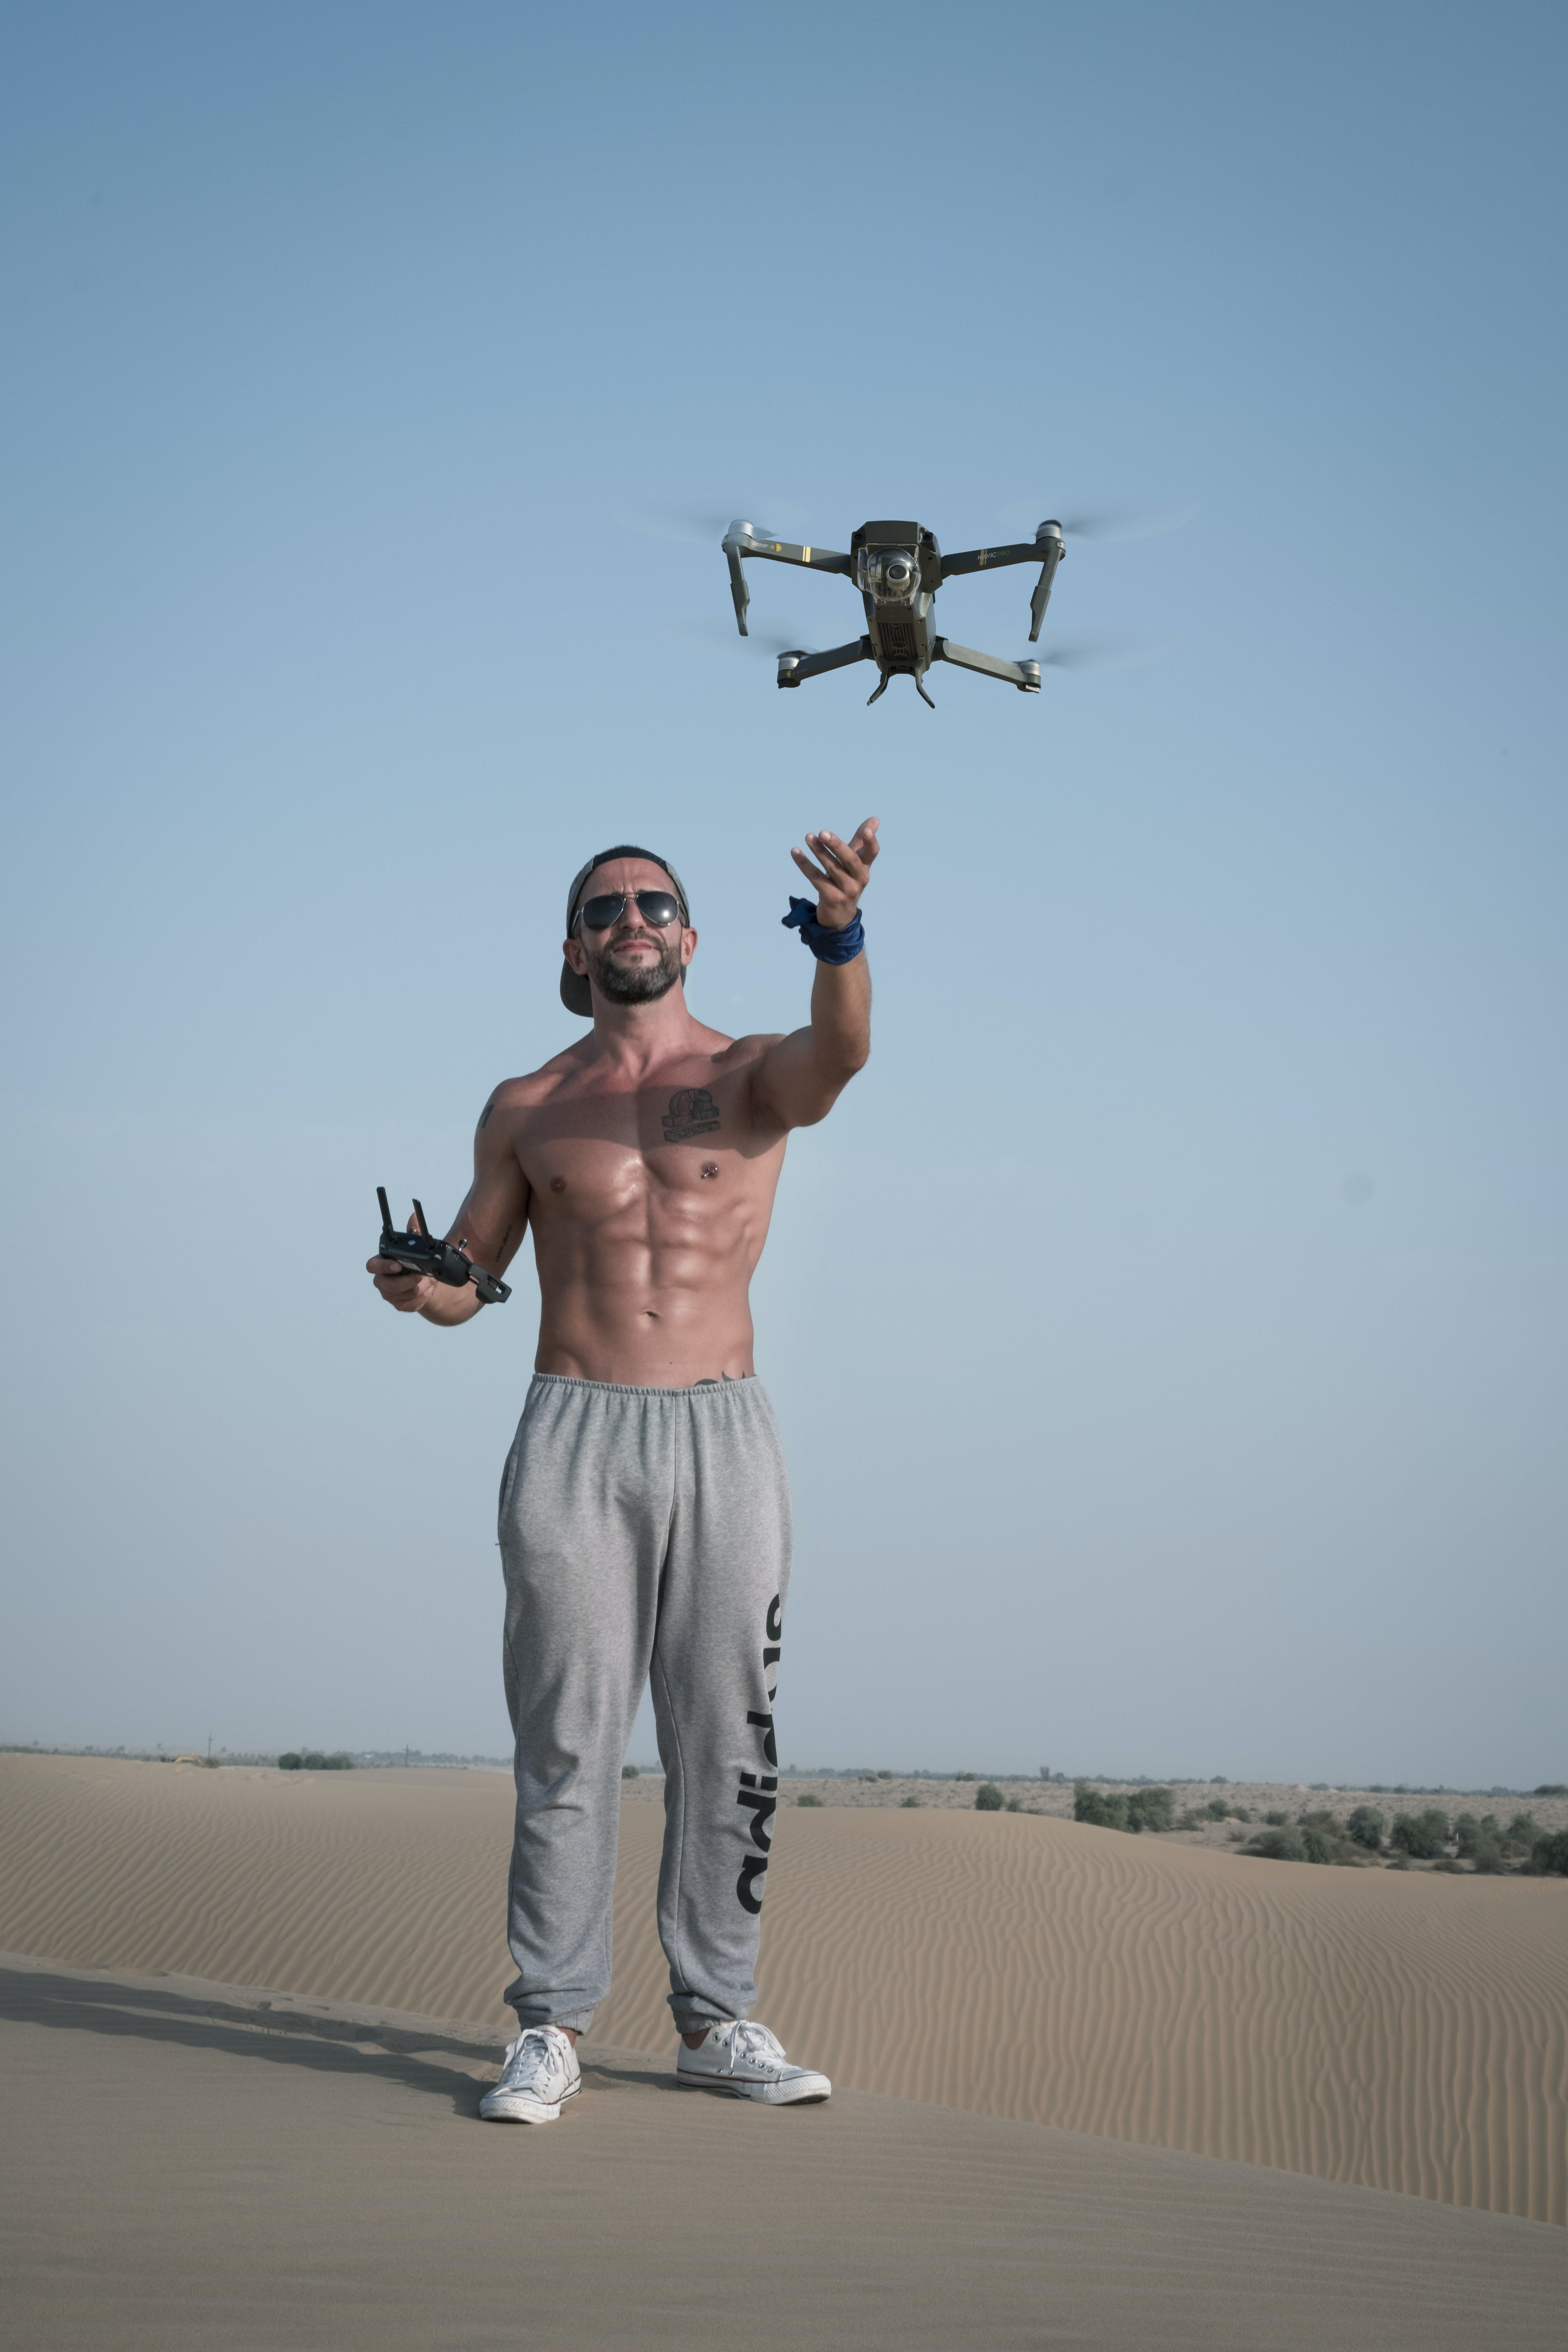 Man Holding Drone Remote Standing on Gray Concrete Pavement